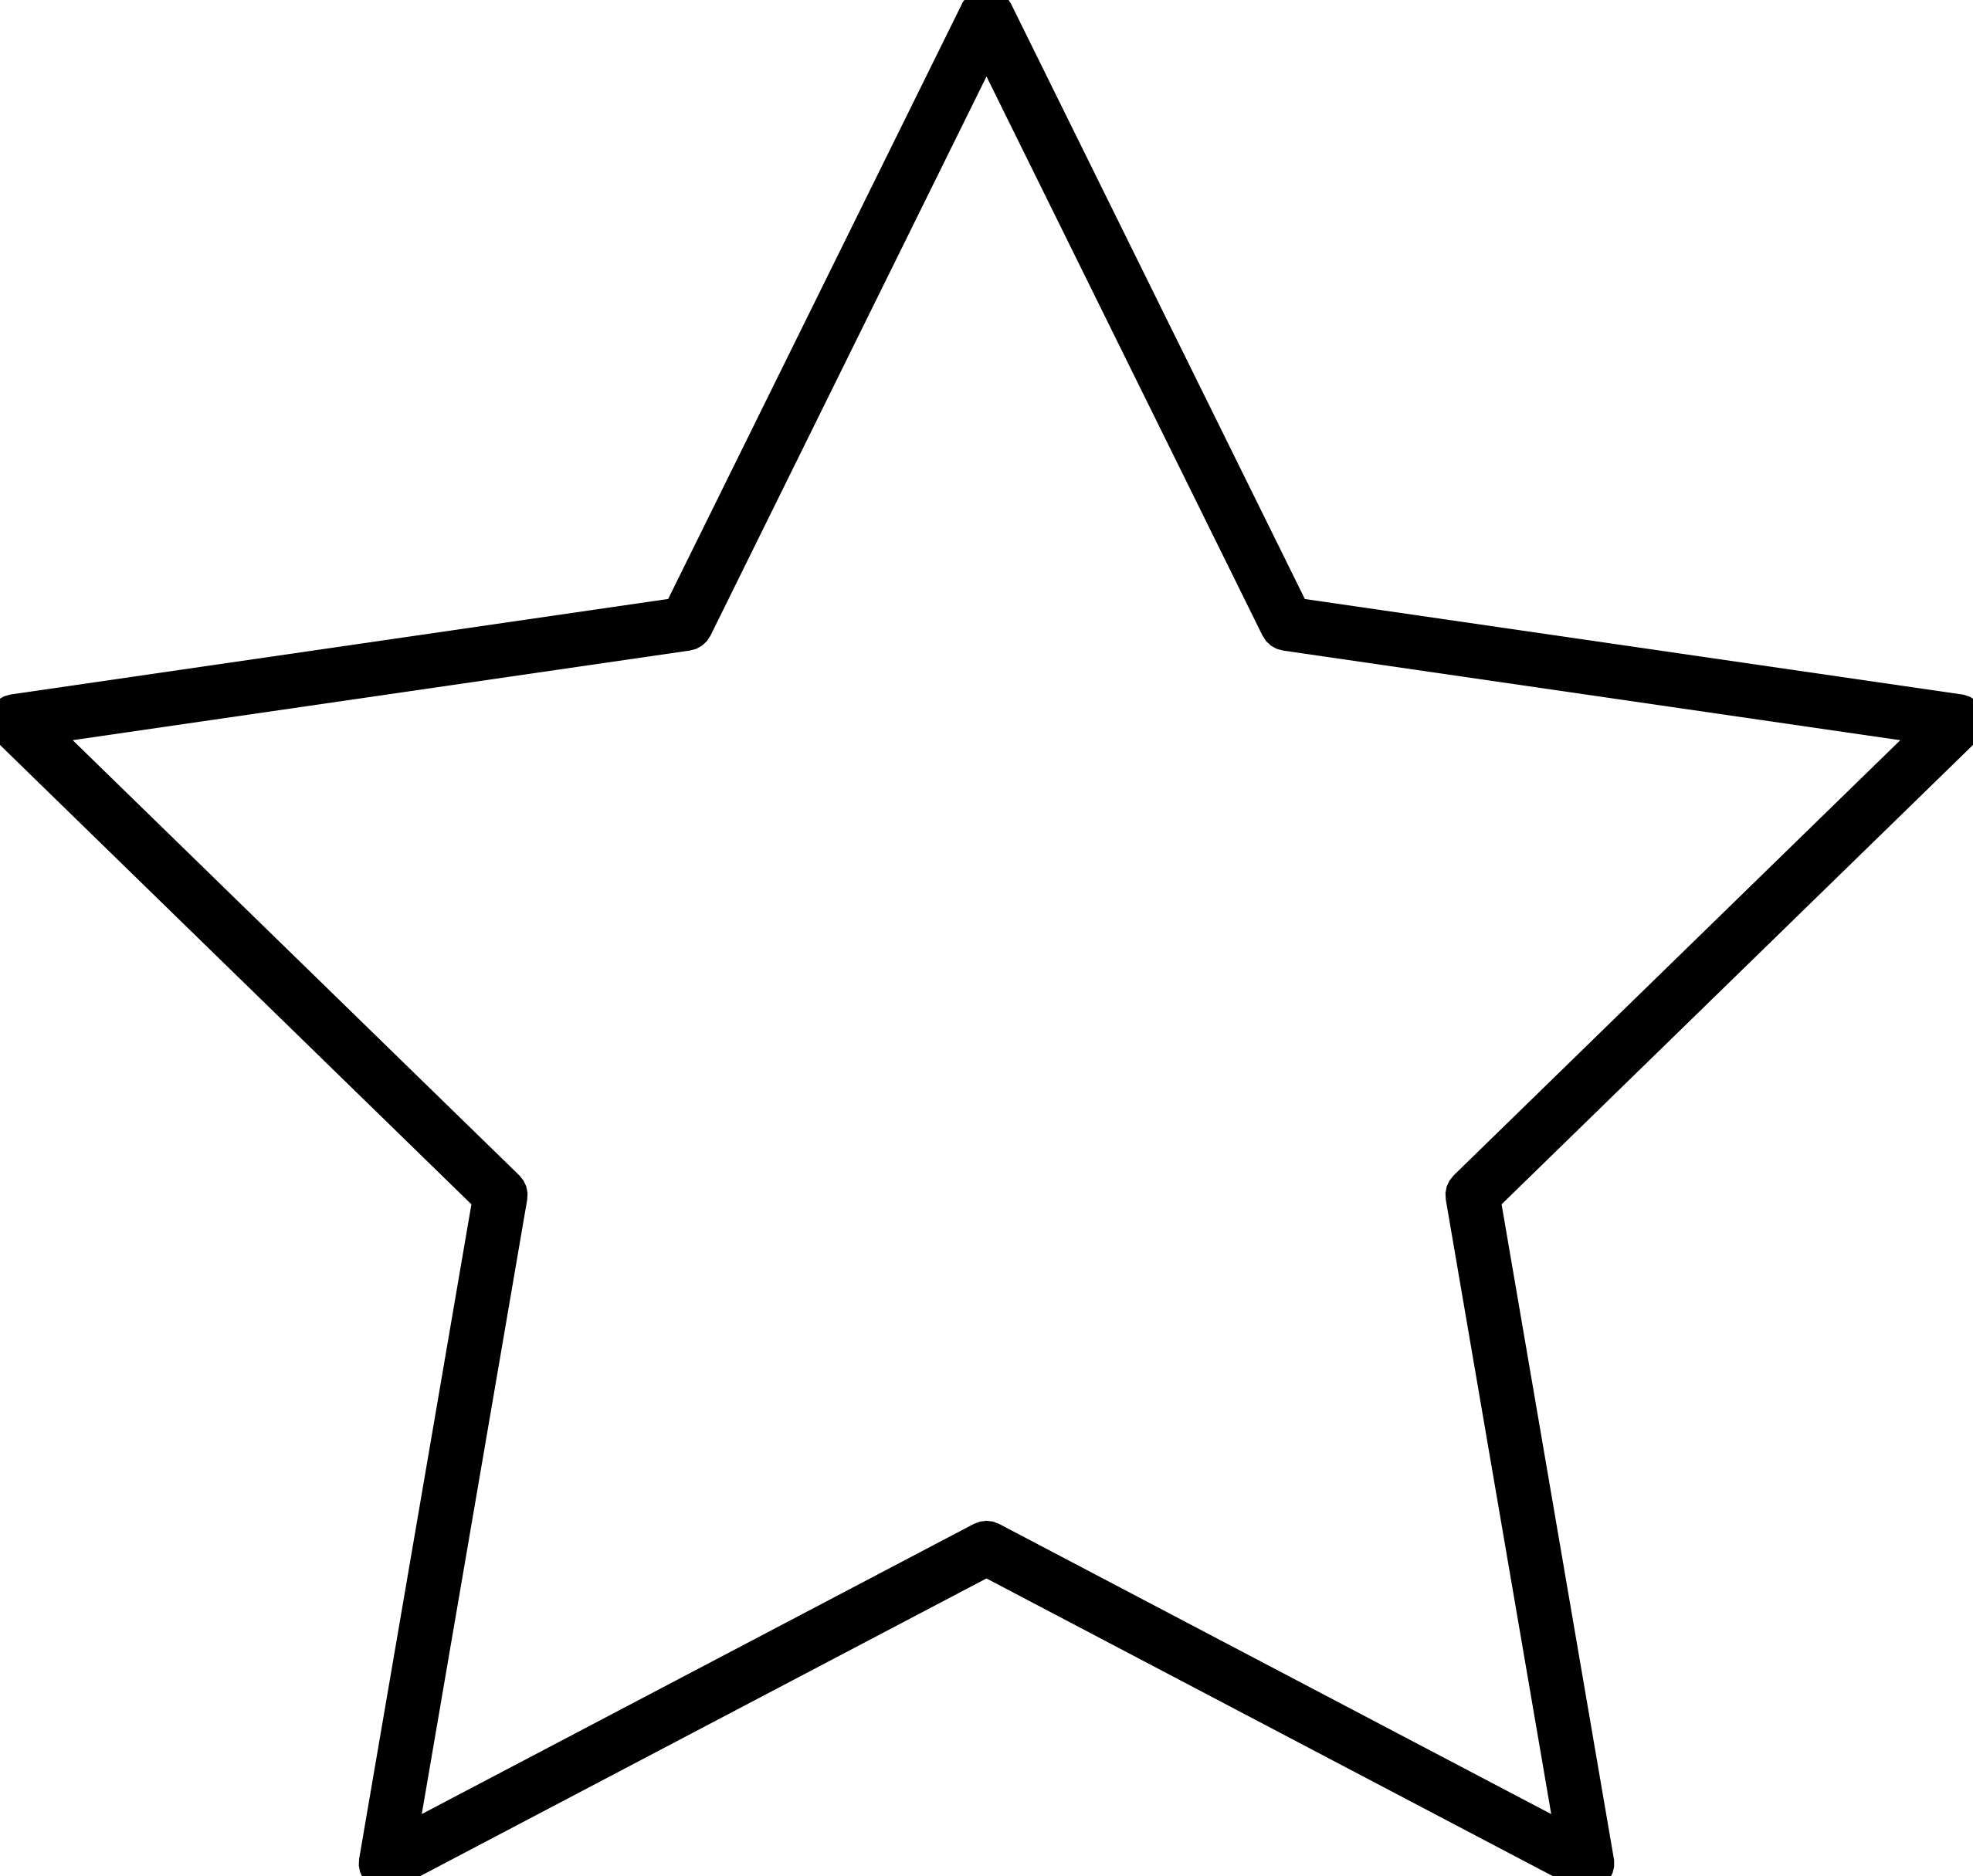 star clipart black and white